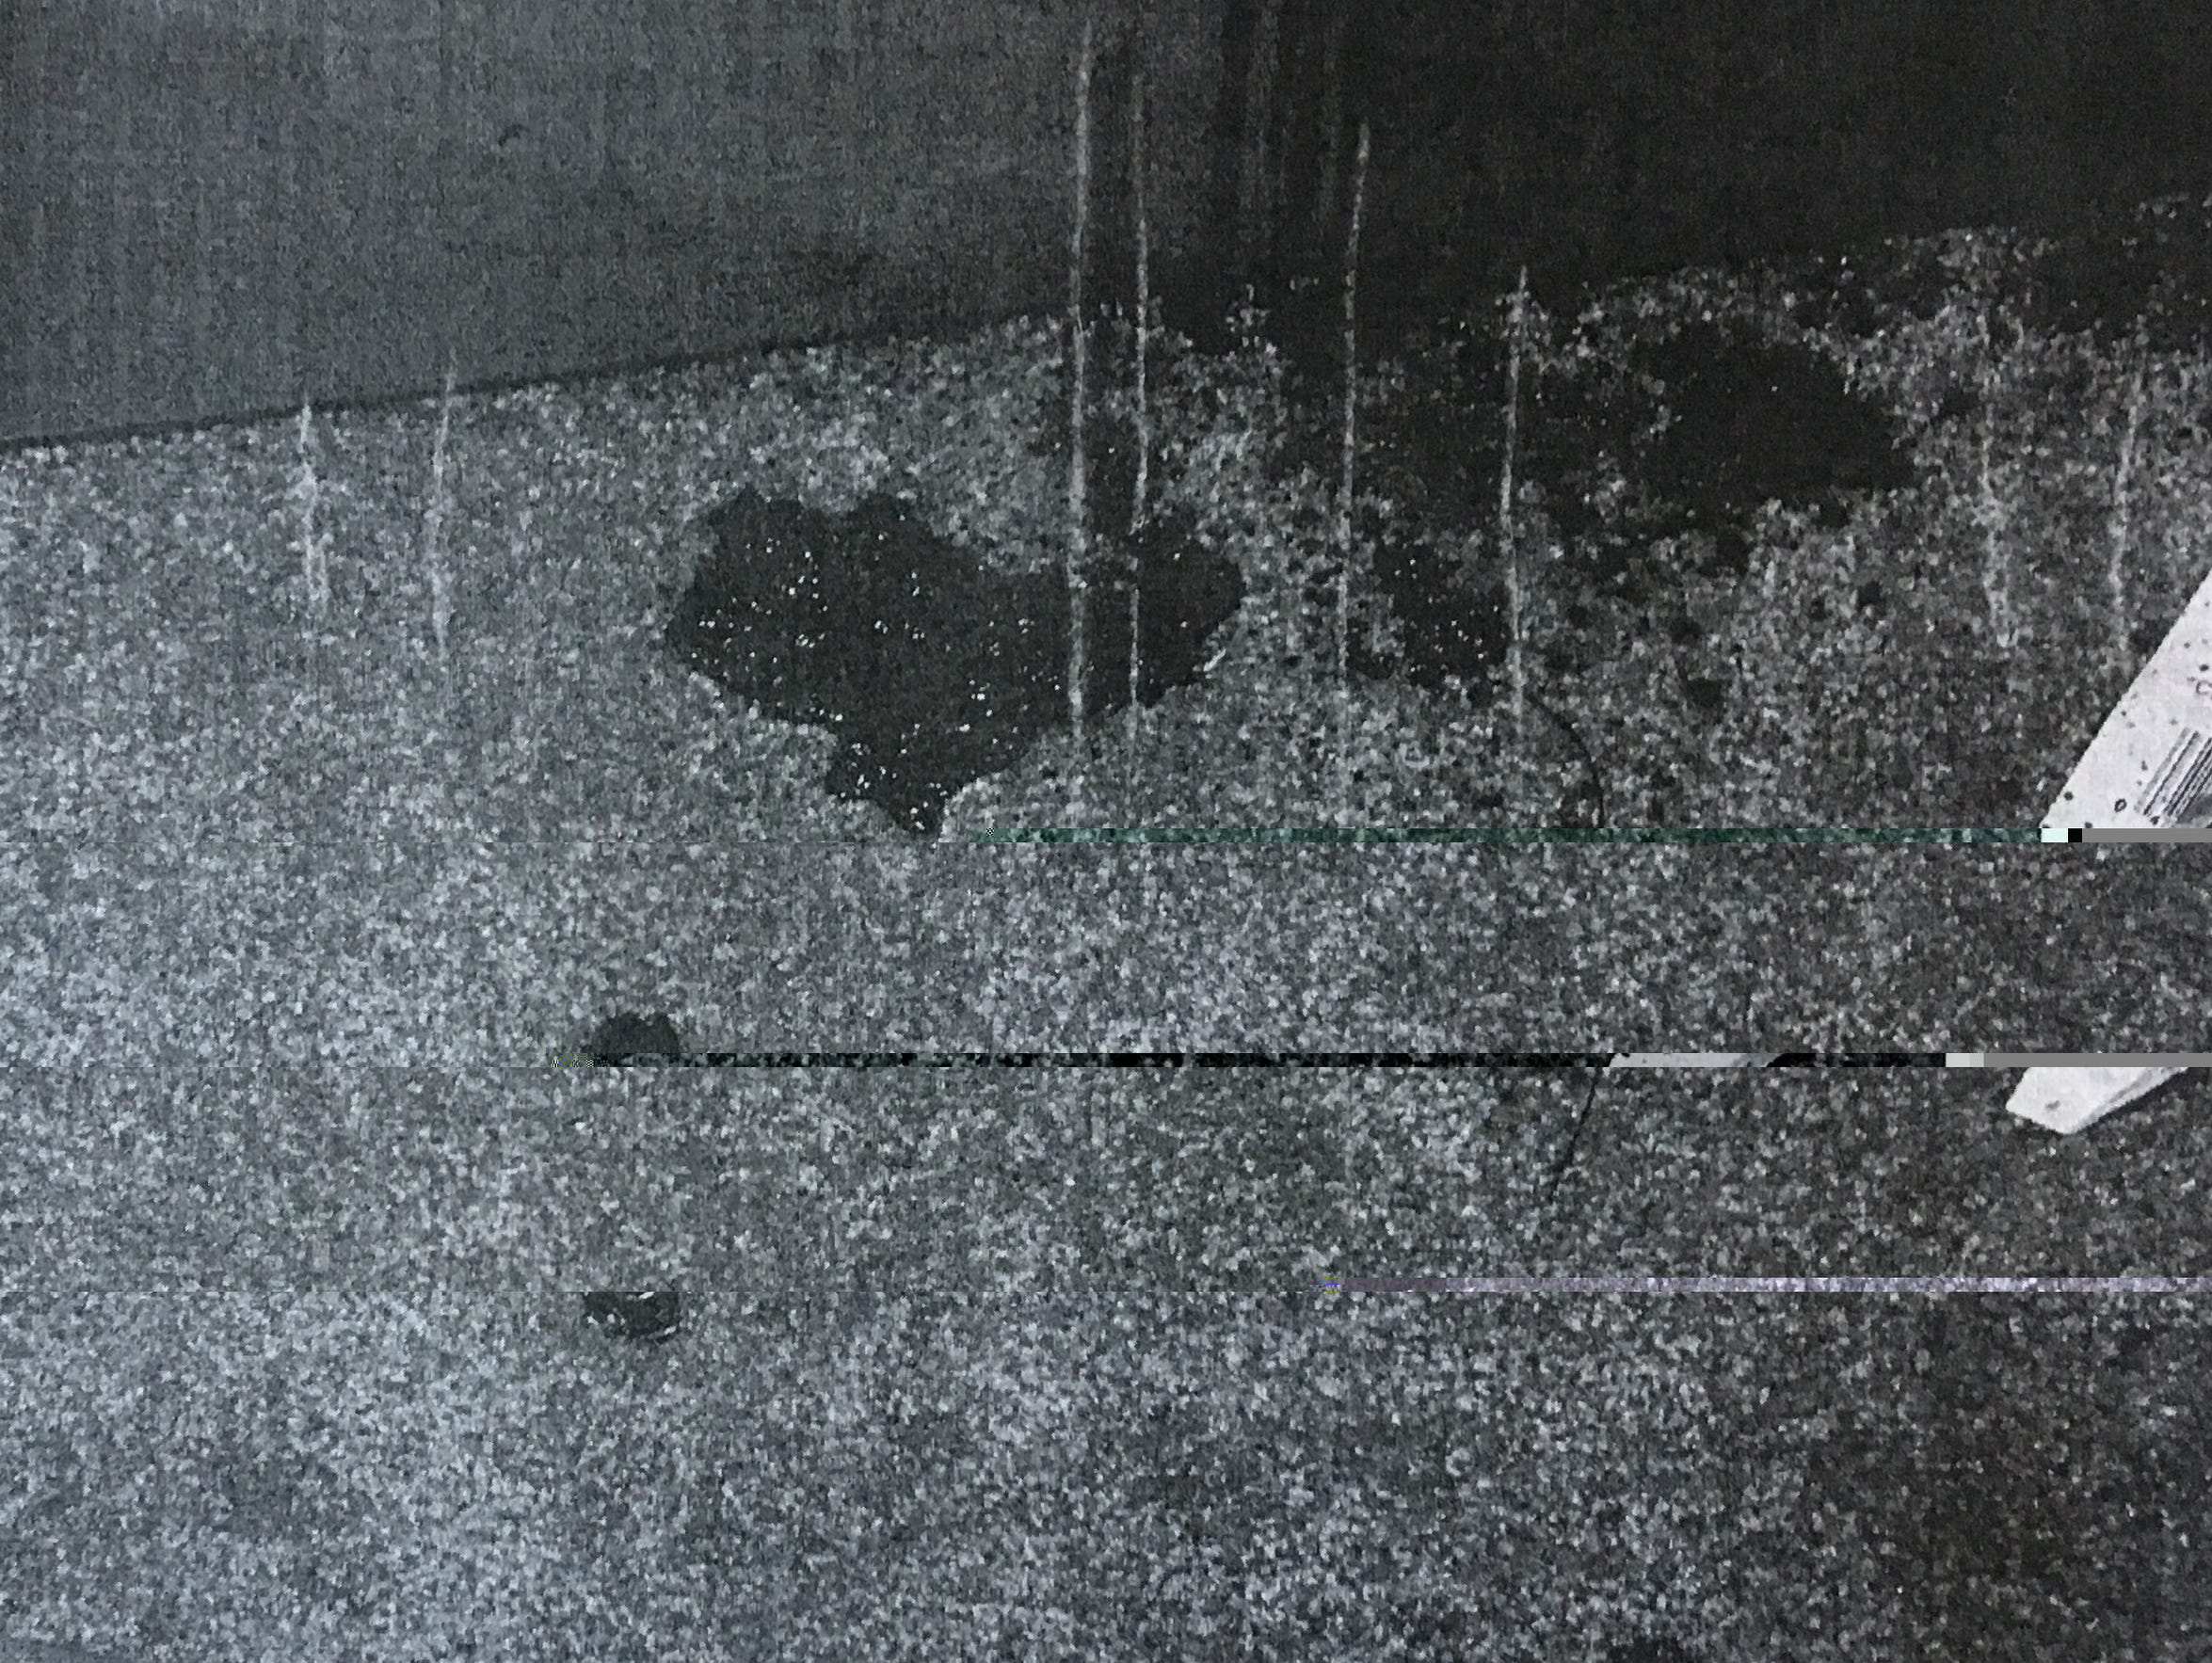 A blood-spatter analysis by the Missouri State Highway